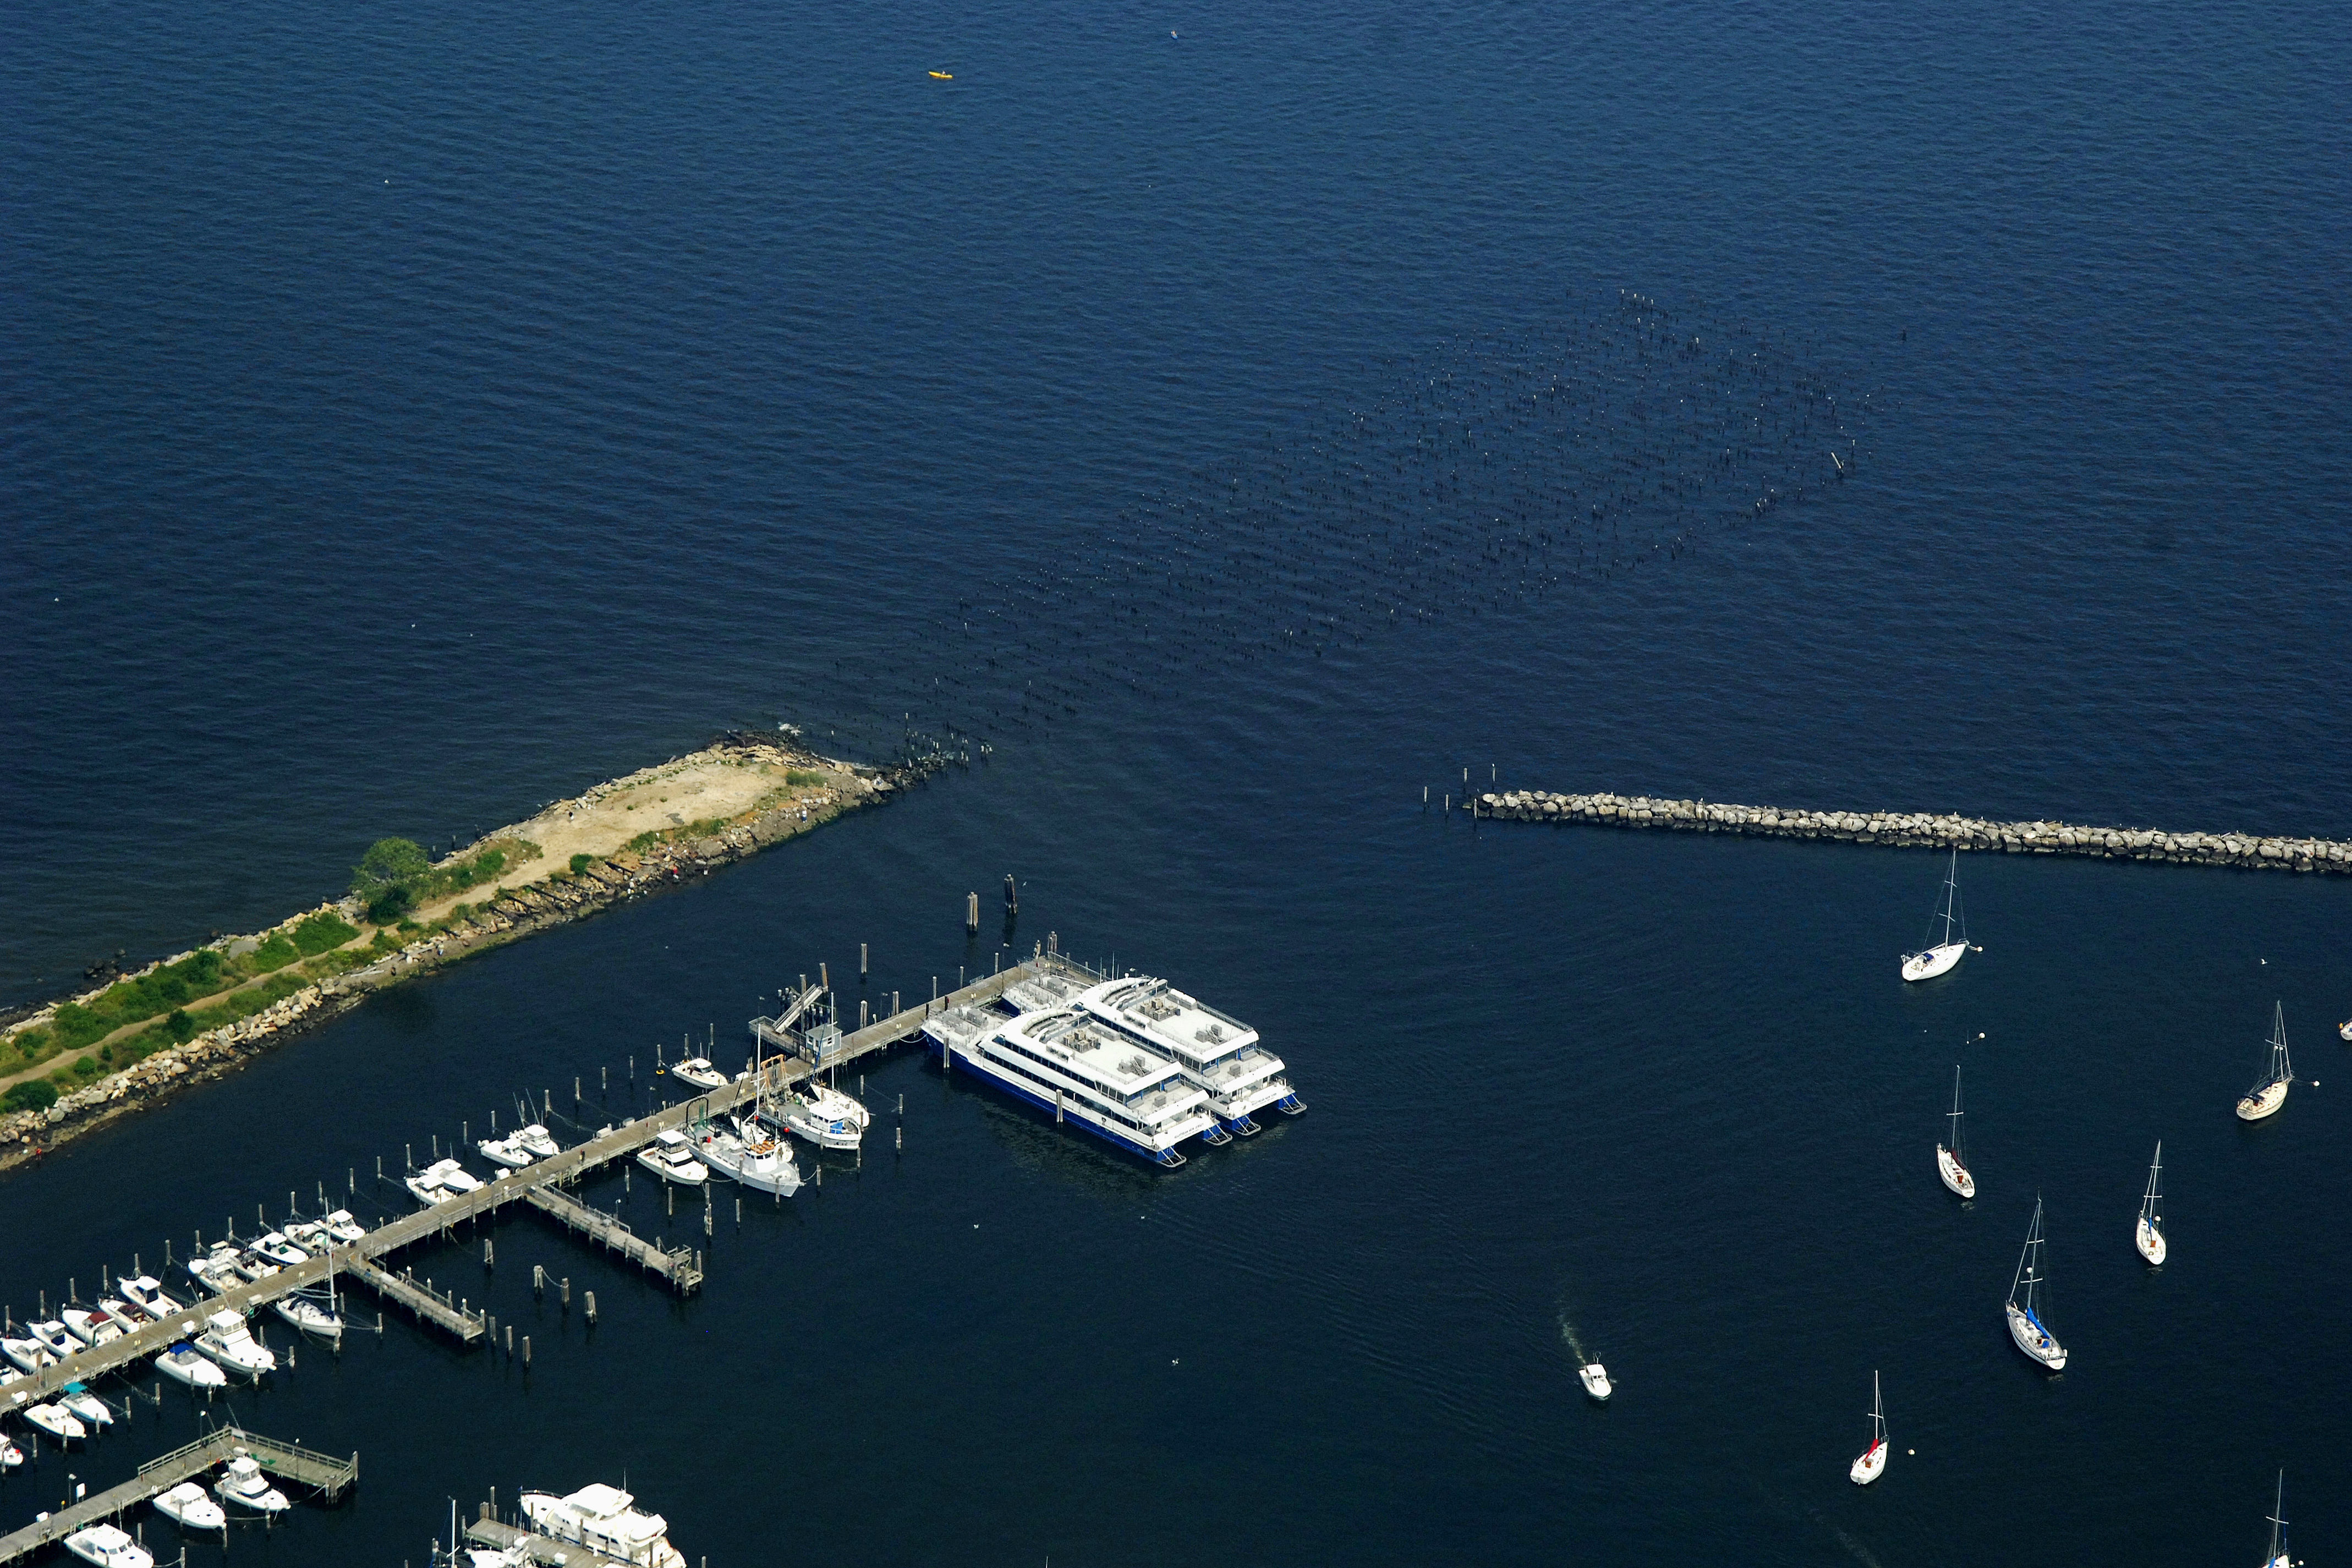 Atlantic highlands inlet in atlantic highlands nj united states atlantic highlands inlet nvjuhfo Image collections